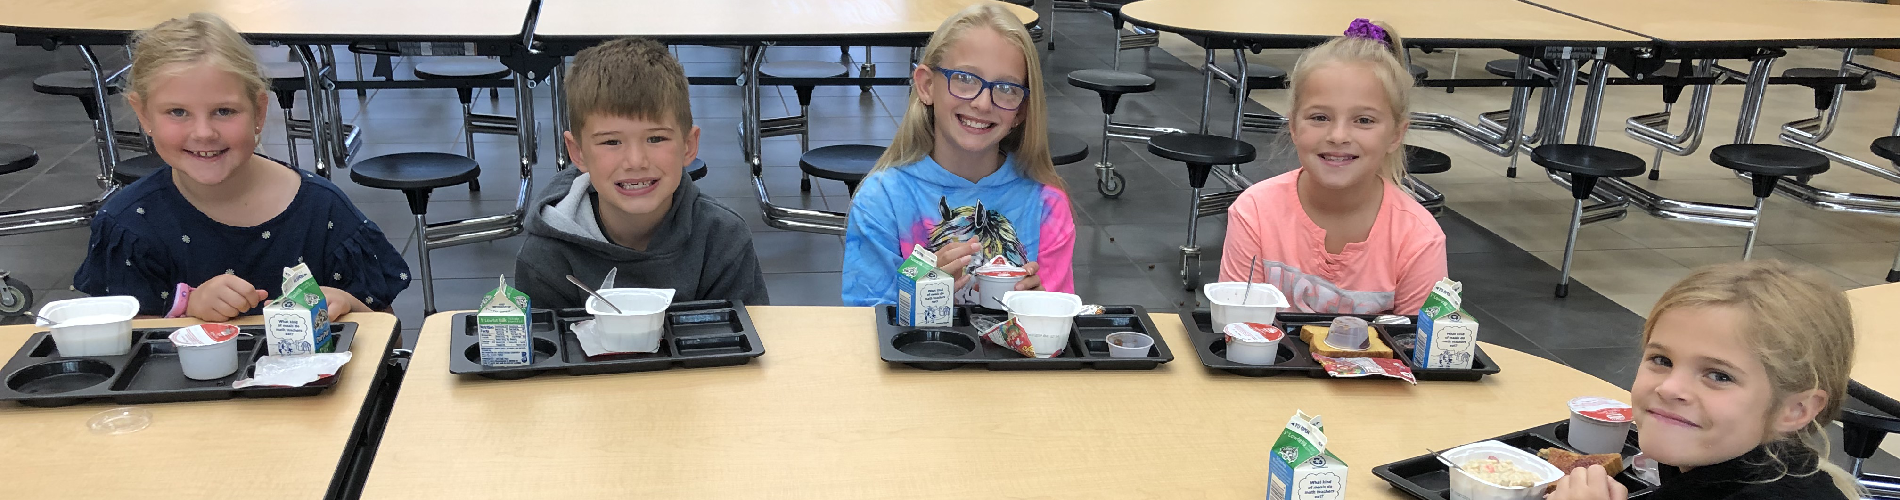 Elementary students smile for the camera while eating breakfast.